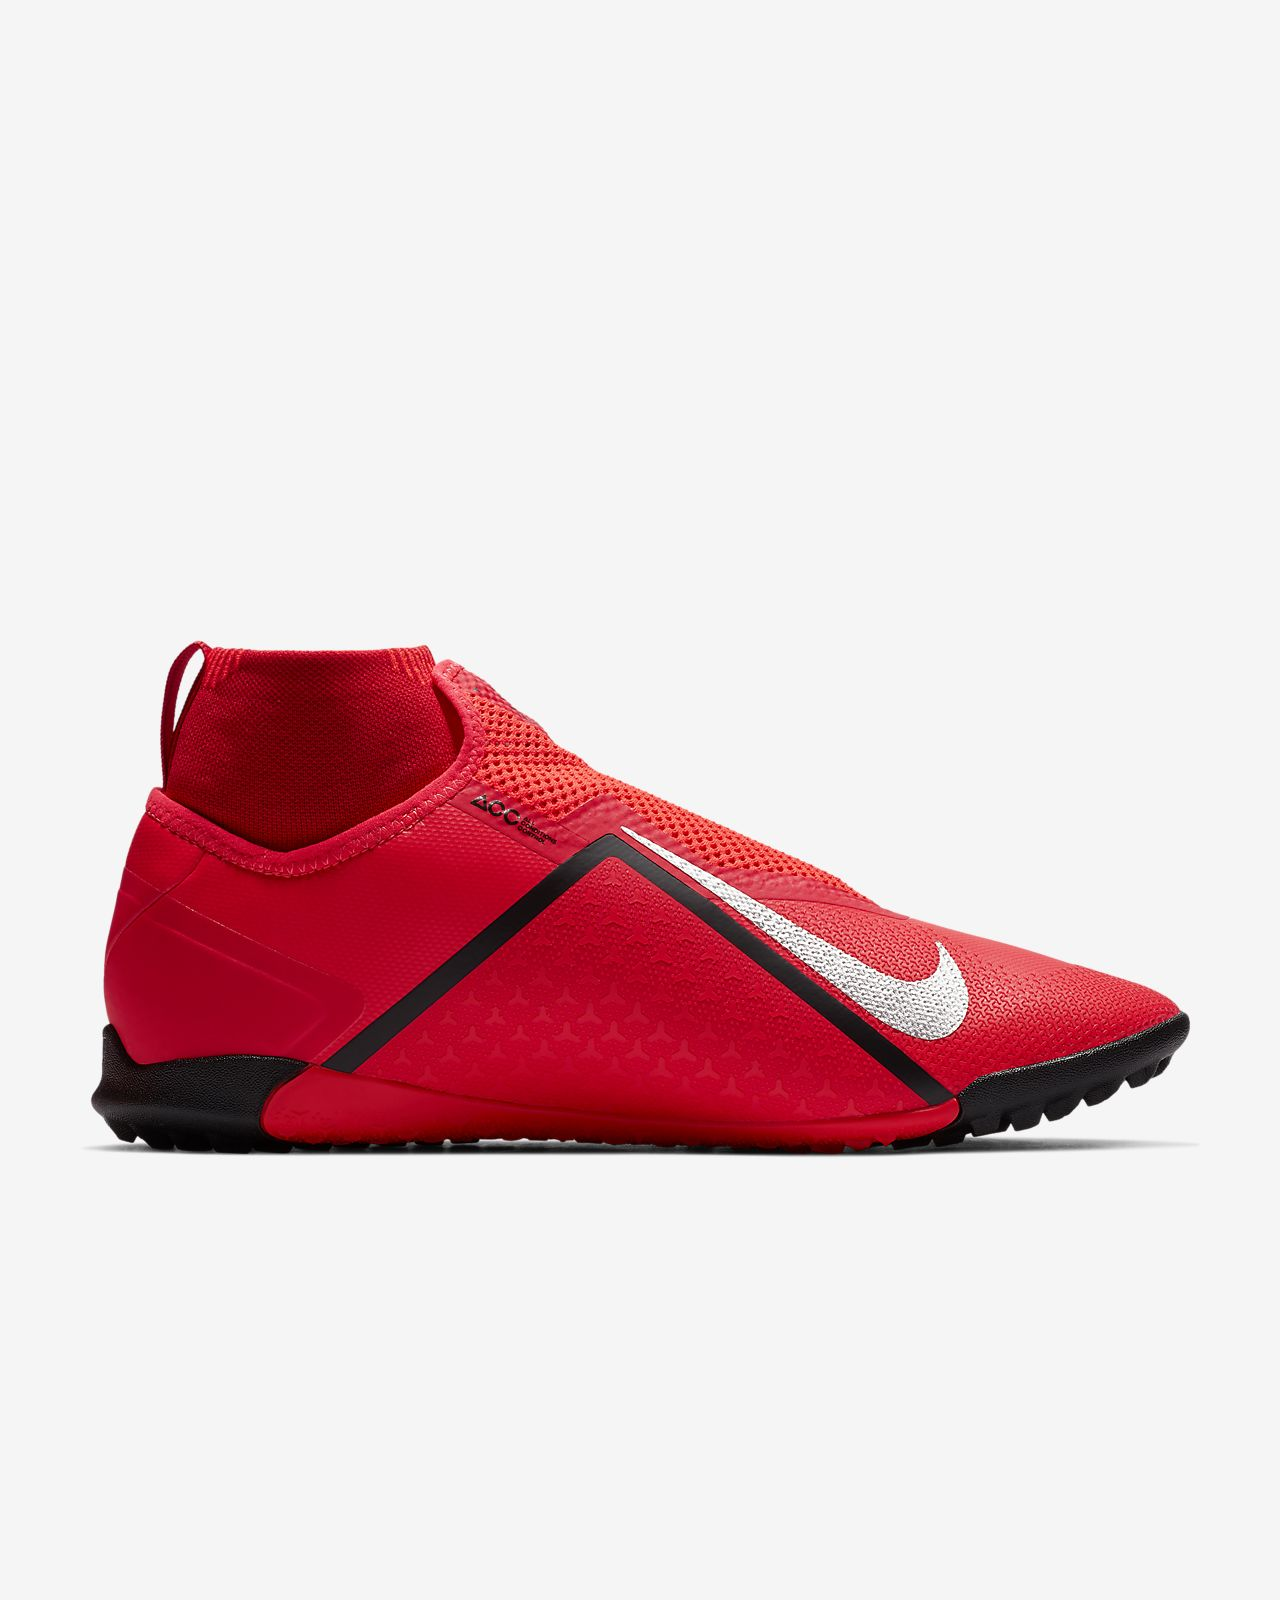 Nike React PhantomVSN Pro Dynamic Fit Game Over TF Turf Soccer Shoe